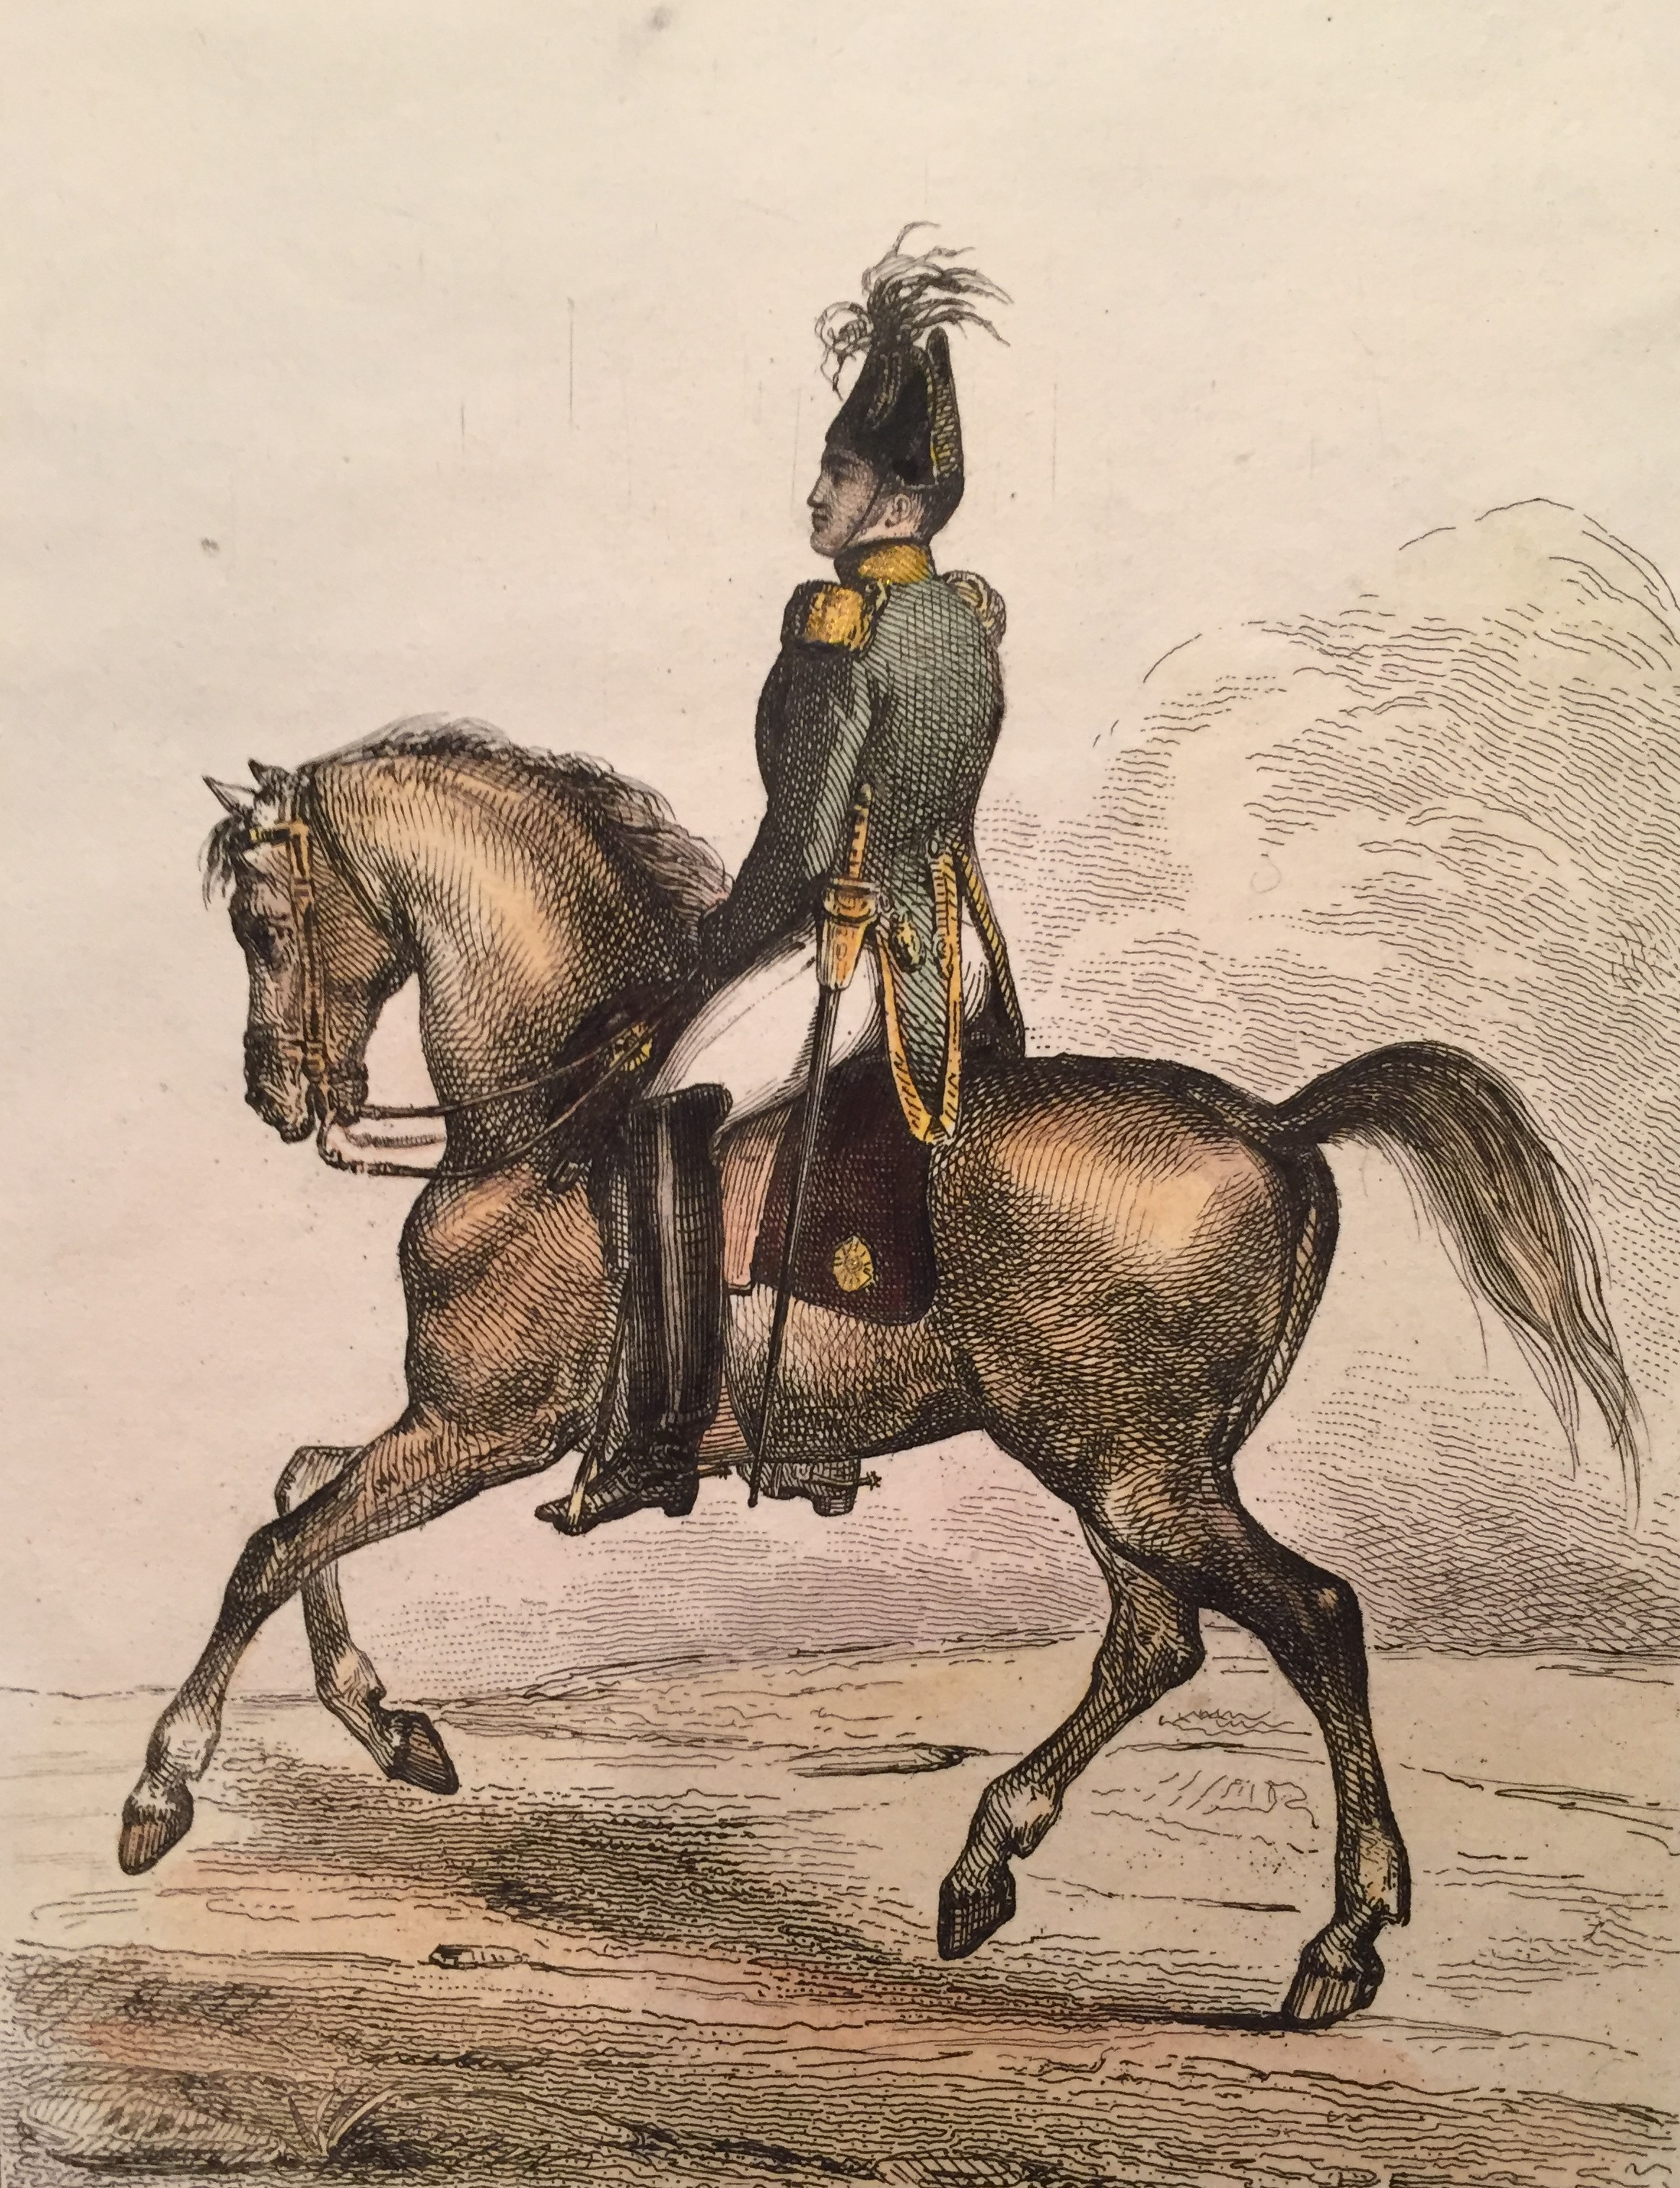 Figure 1 - Emperor Alexander I. Image from author's archive.